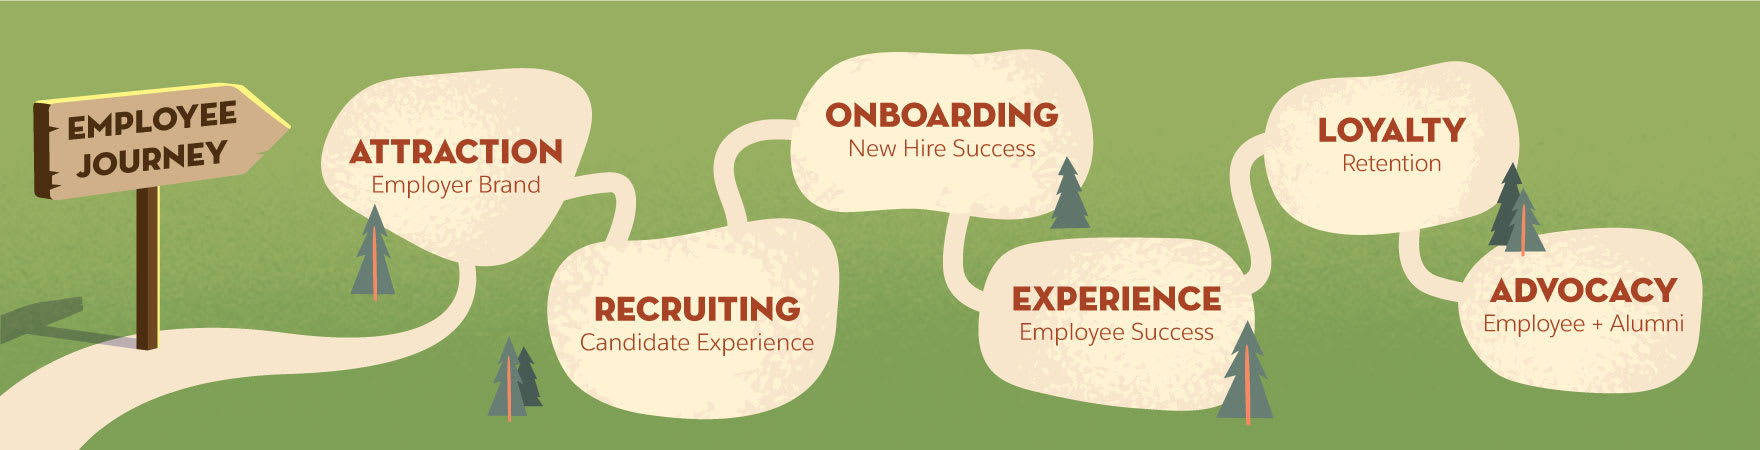 Graphic showing the stages of the employee journey—attraction, recruiting, onboarding, experience, loyalty, and advocacy.